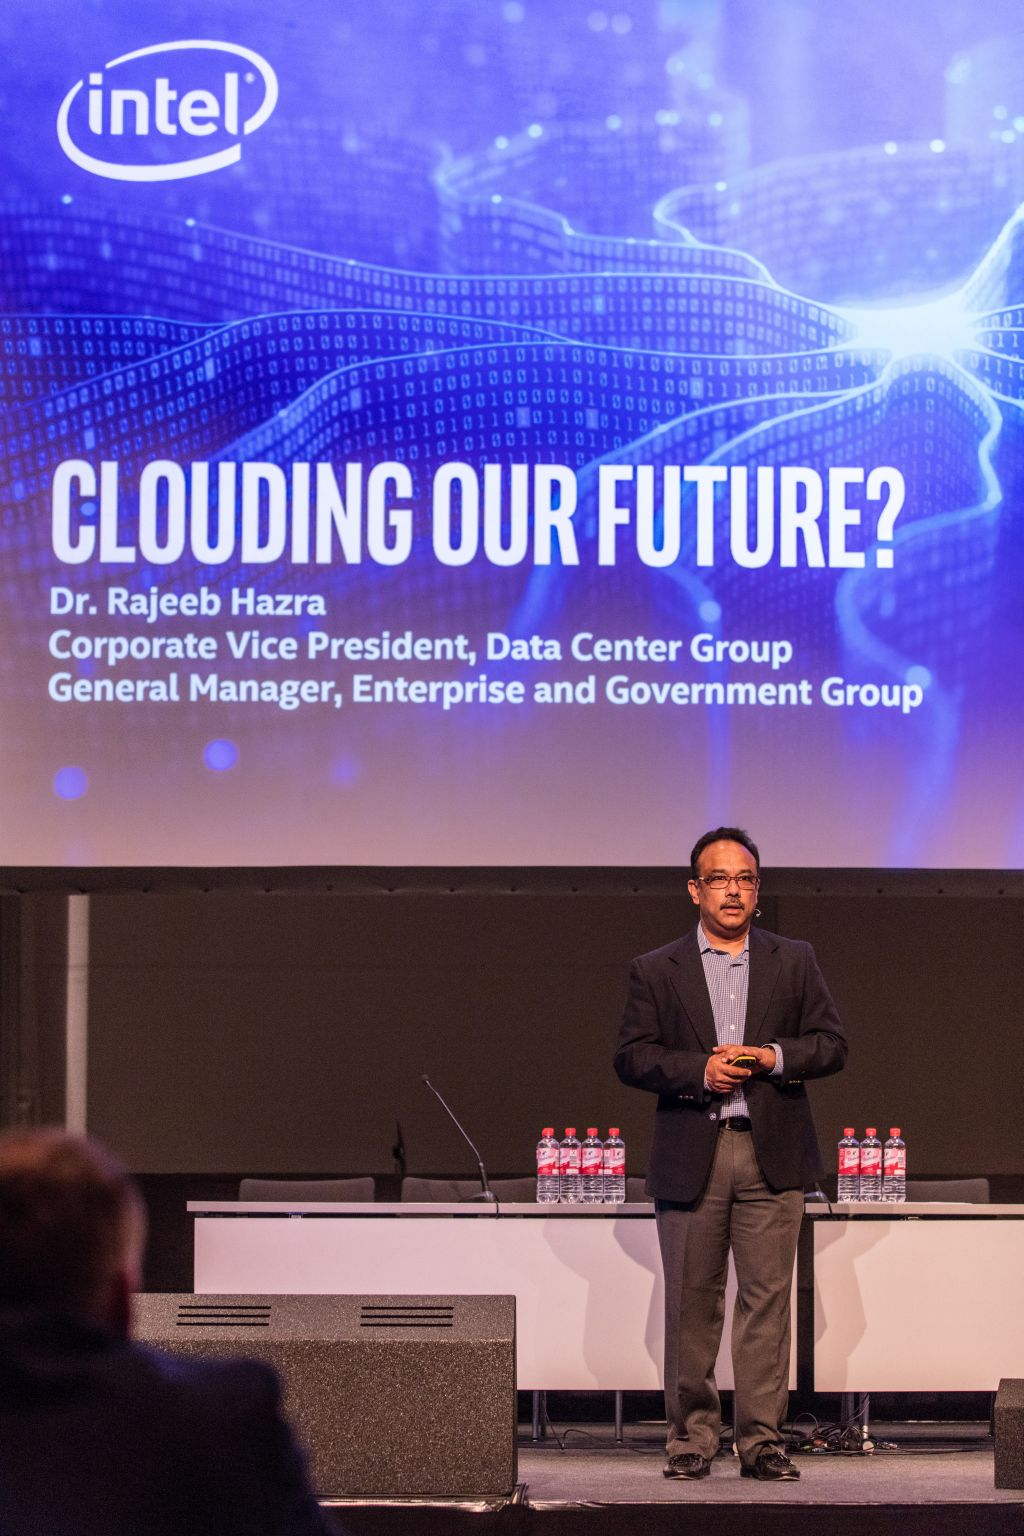 Raj Hazra, Intel's Corporate Vice President and General Manager, of the Enterprise and Government Group